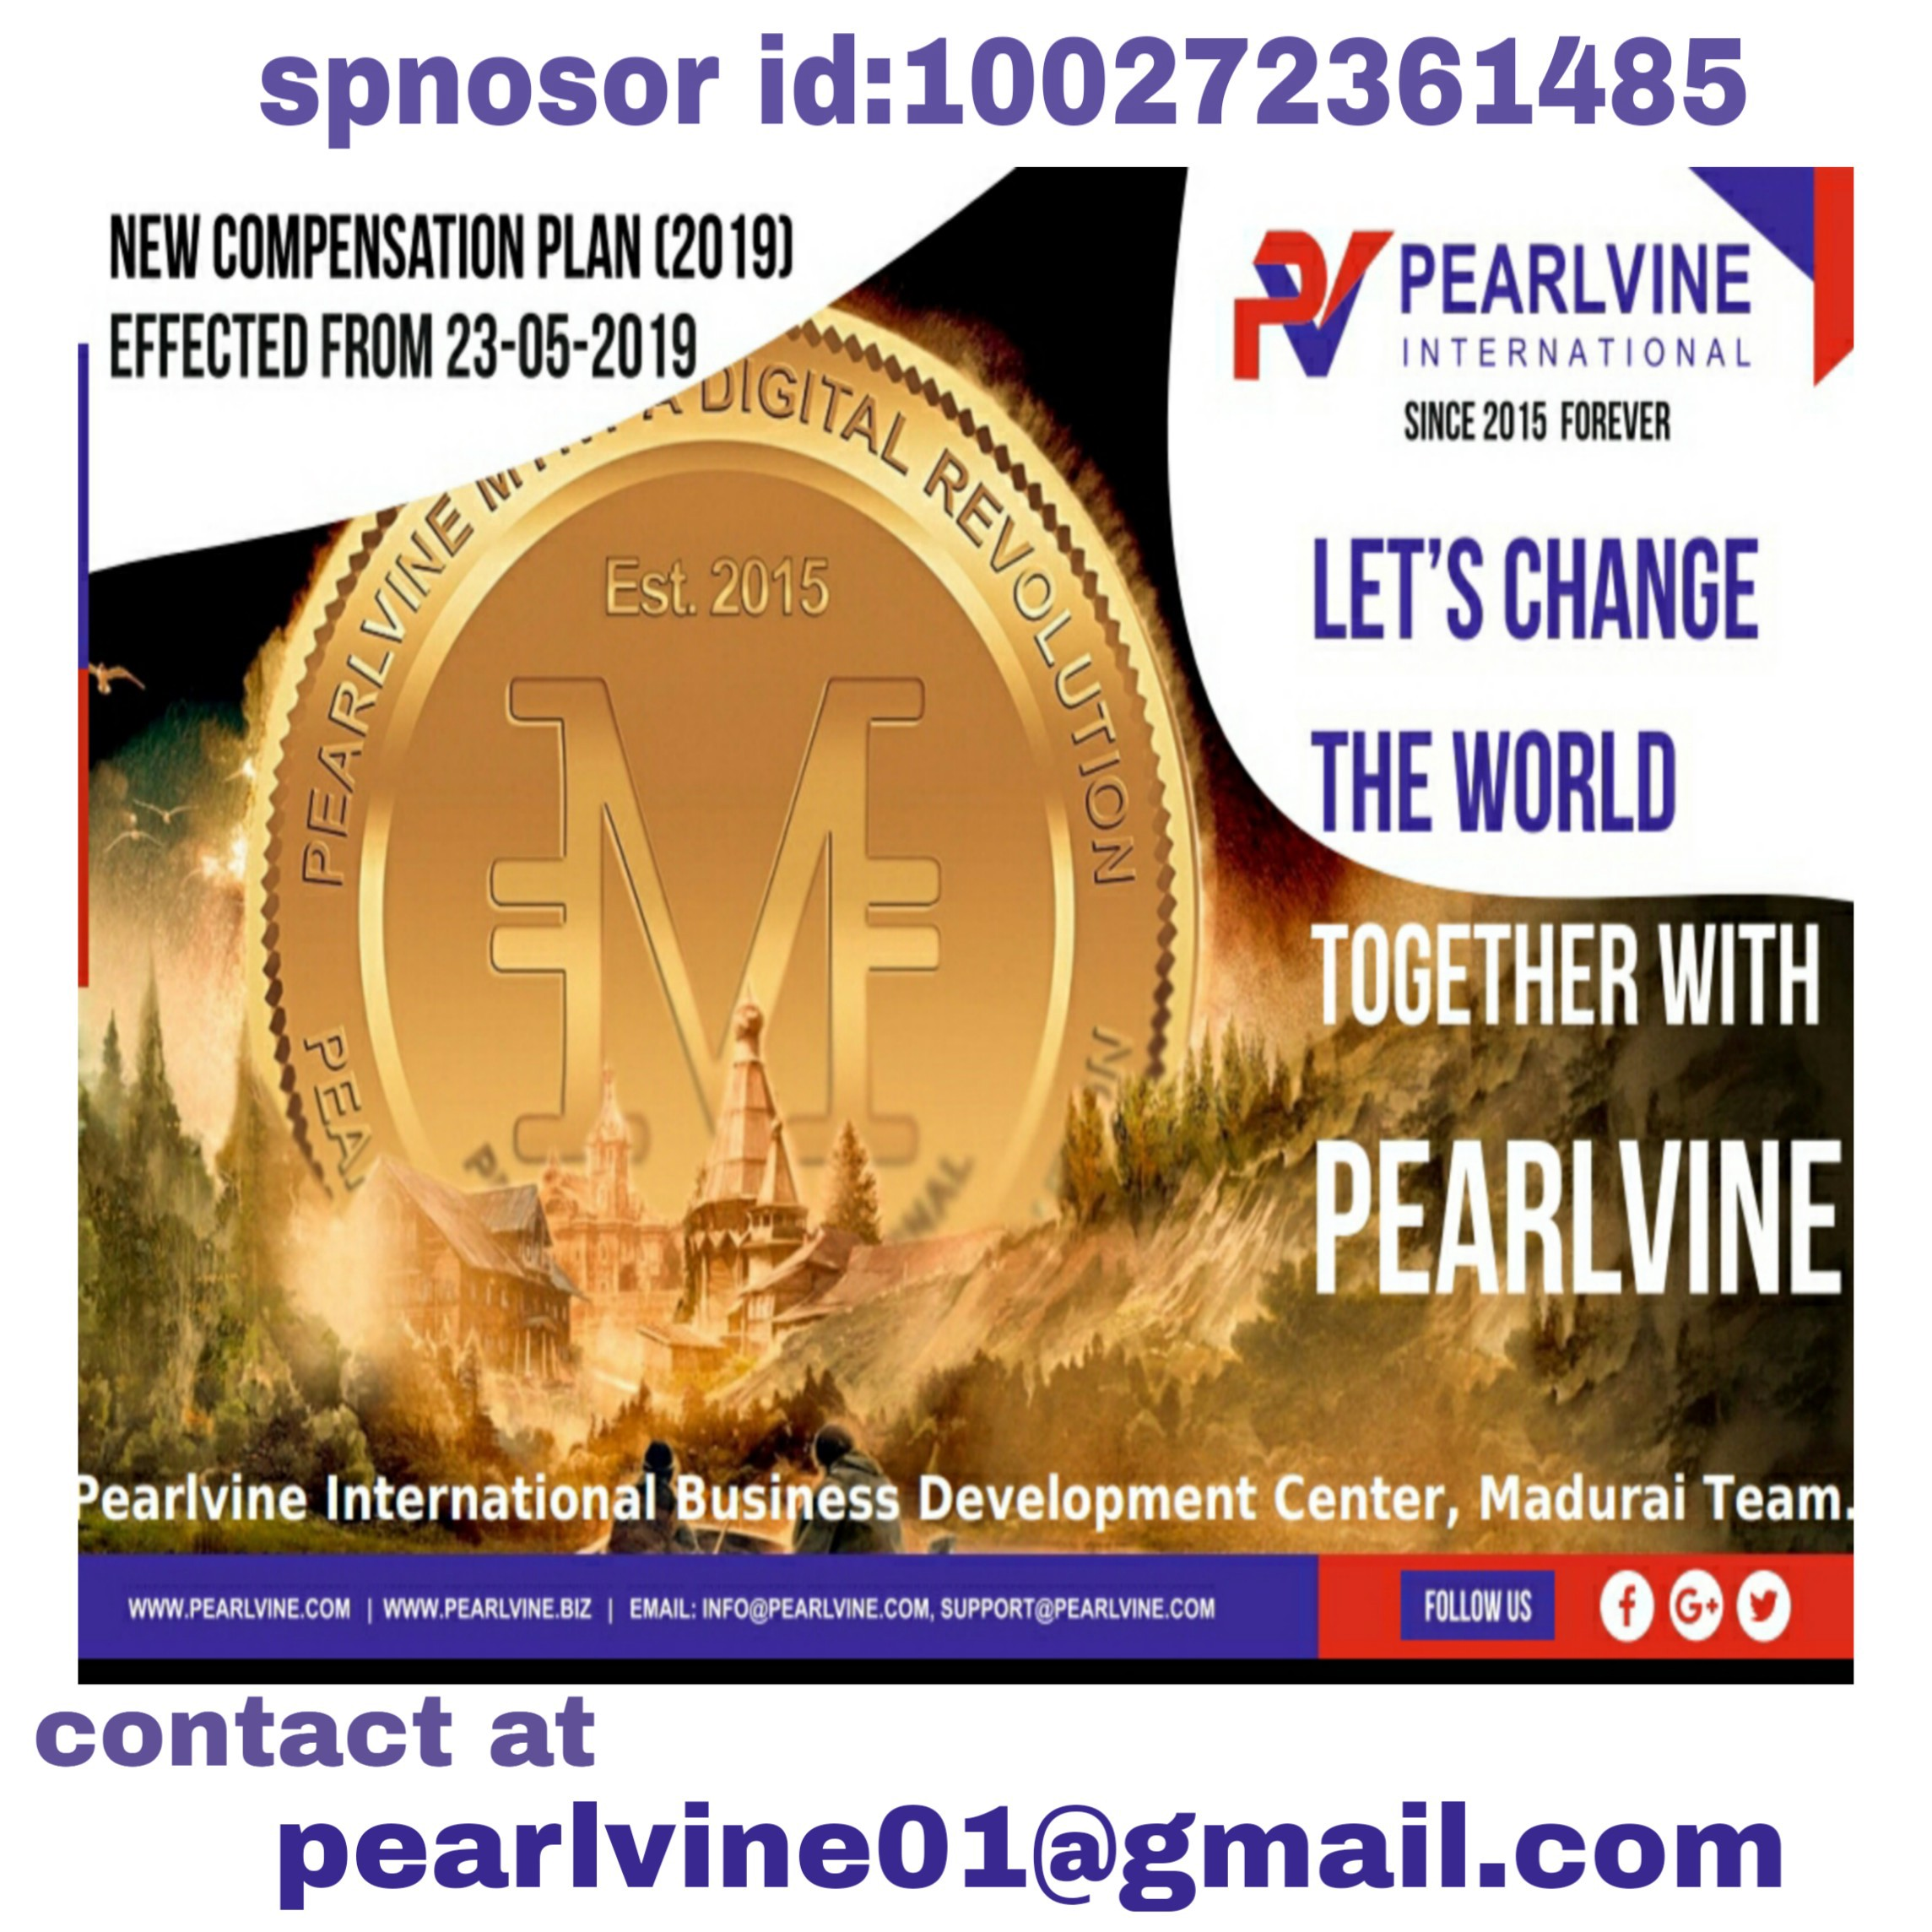 https://pearlvine.com/register.php?sponsor_by=100272361485